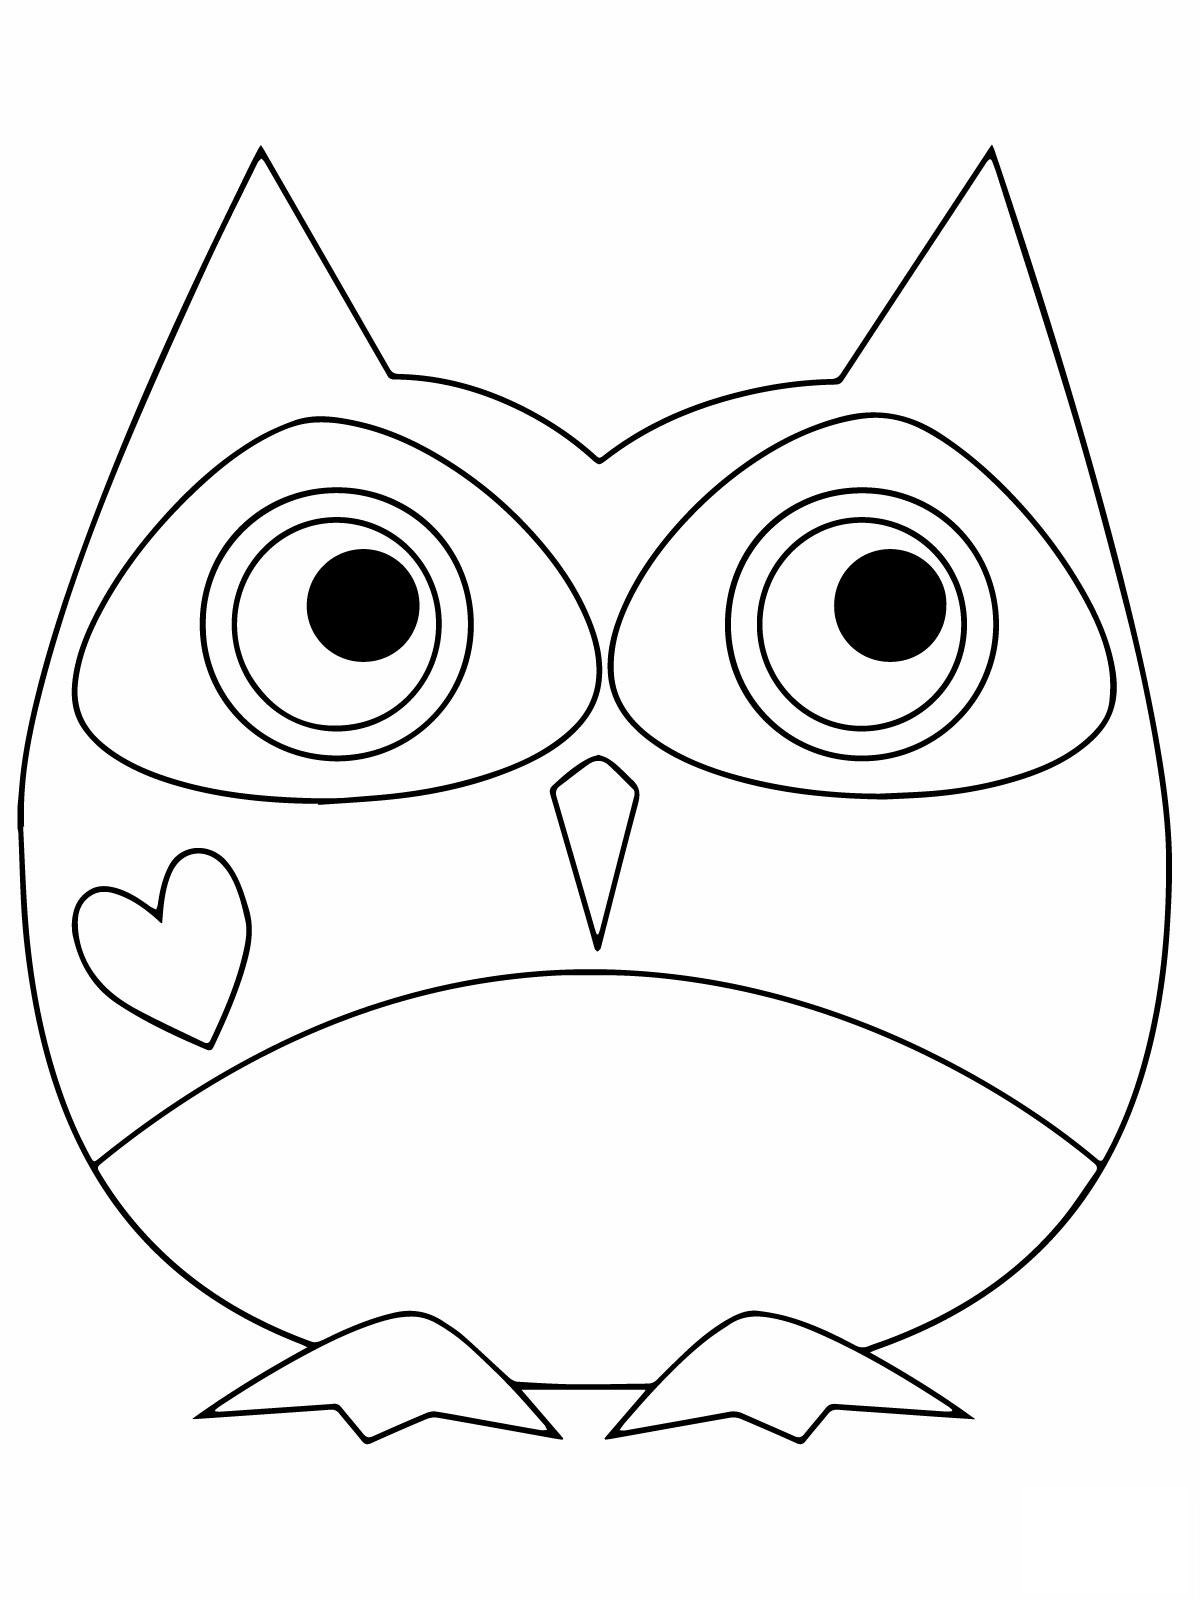 colouring picture of owl owl coloring pages kidsuki picture of colouring owl